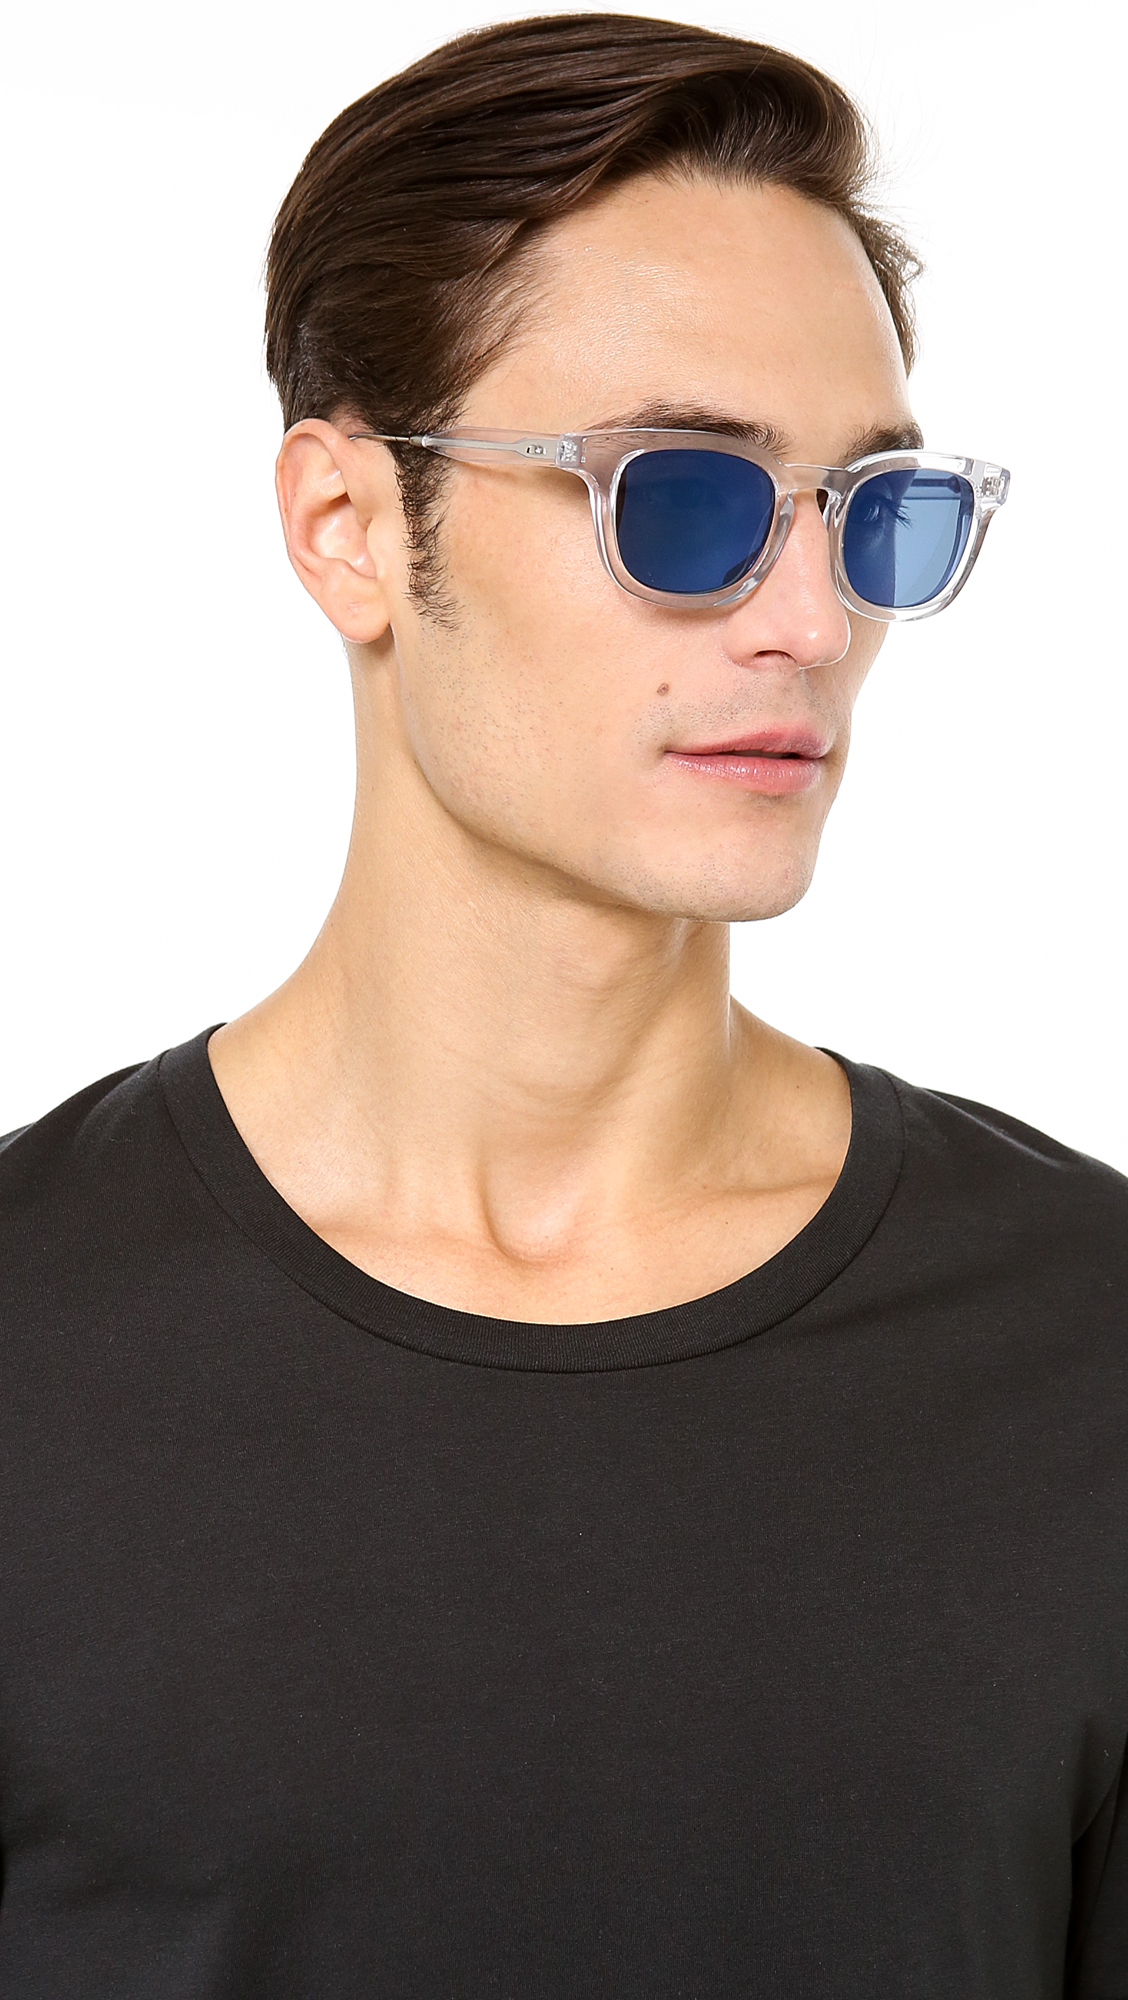 a779090624 Oliver Peoples West Cabrillo Crystal Sunglasses